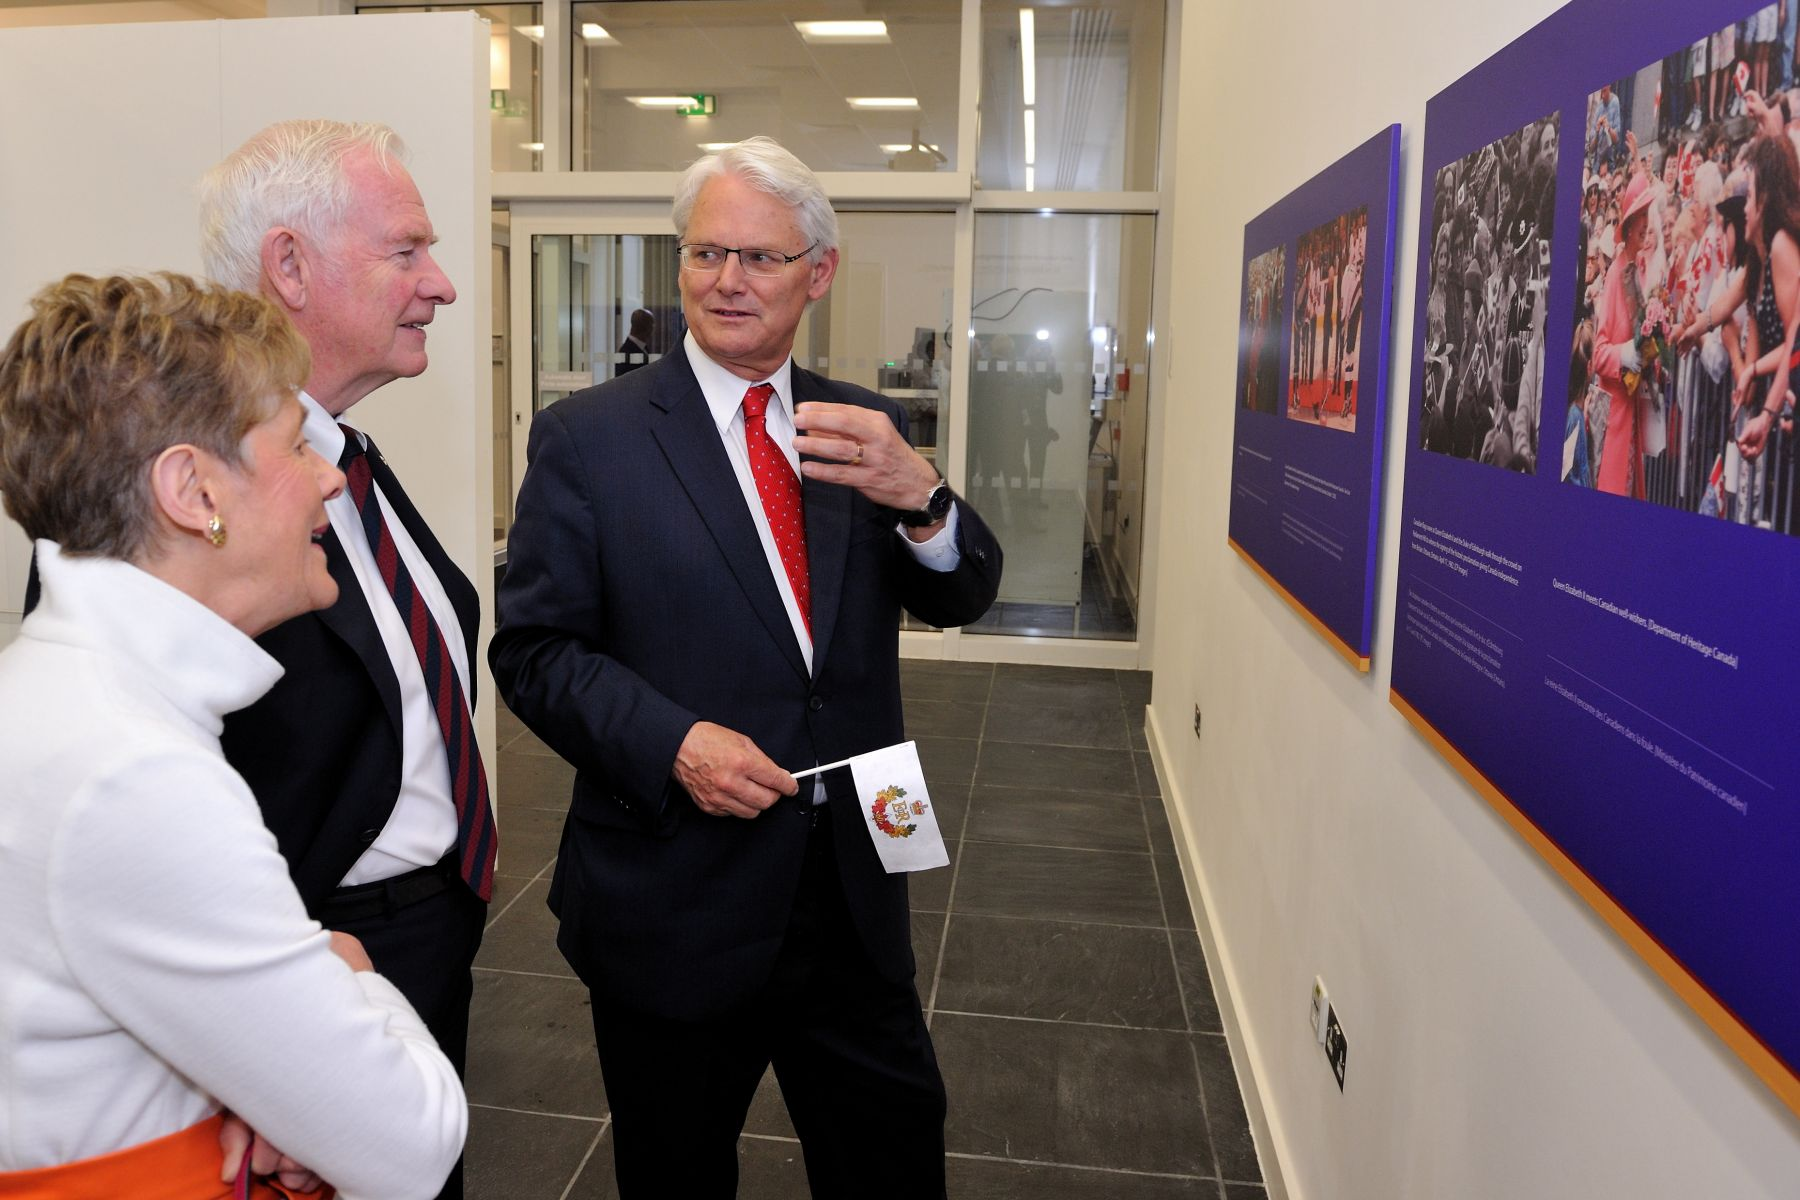 At Canada House, Their Excellencies toured a photographic exhibit of The Queen's visits to Canada. They were accompanied by Mr. Gordon Campbell.